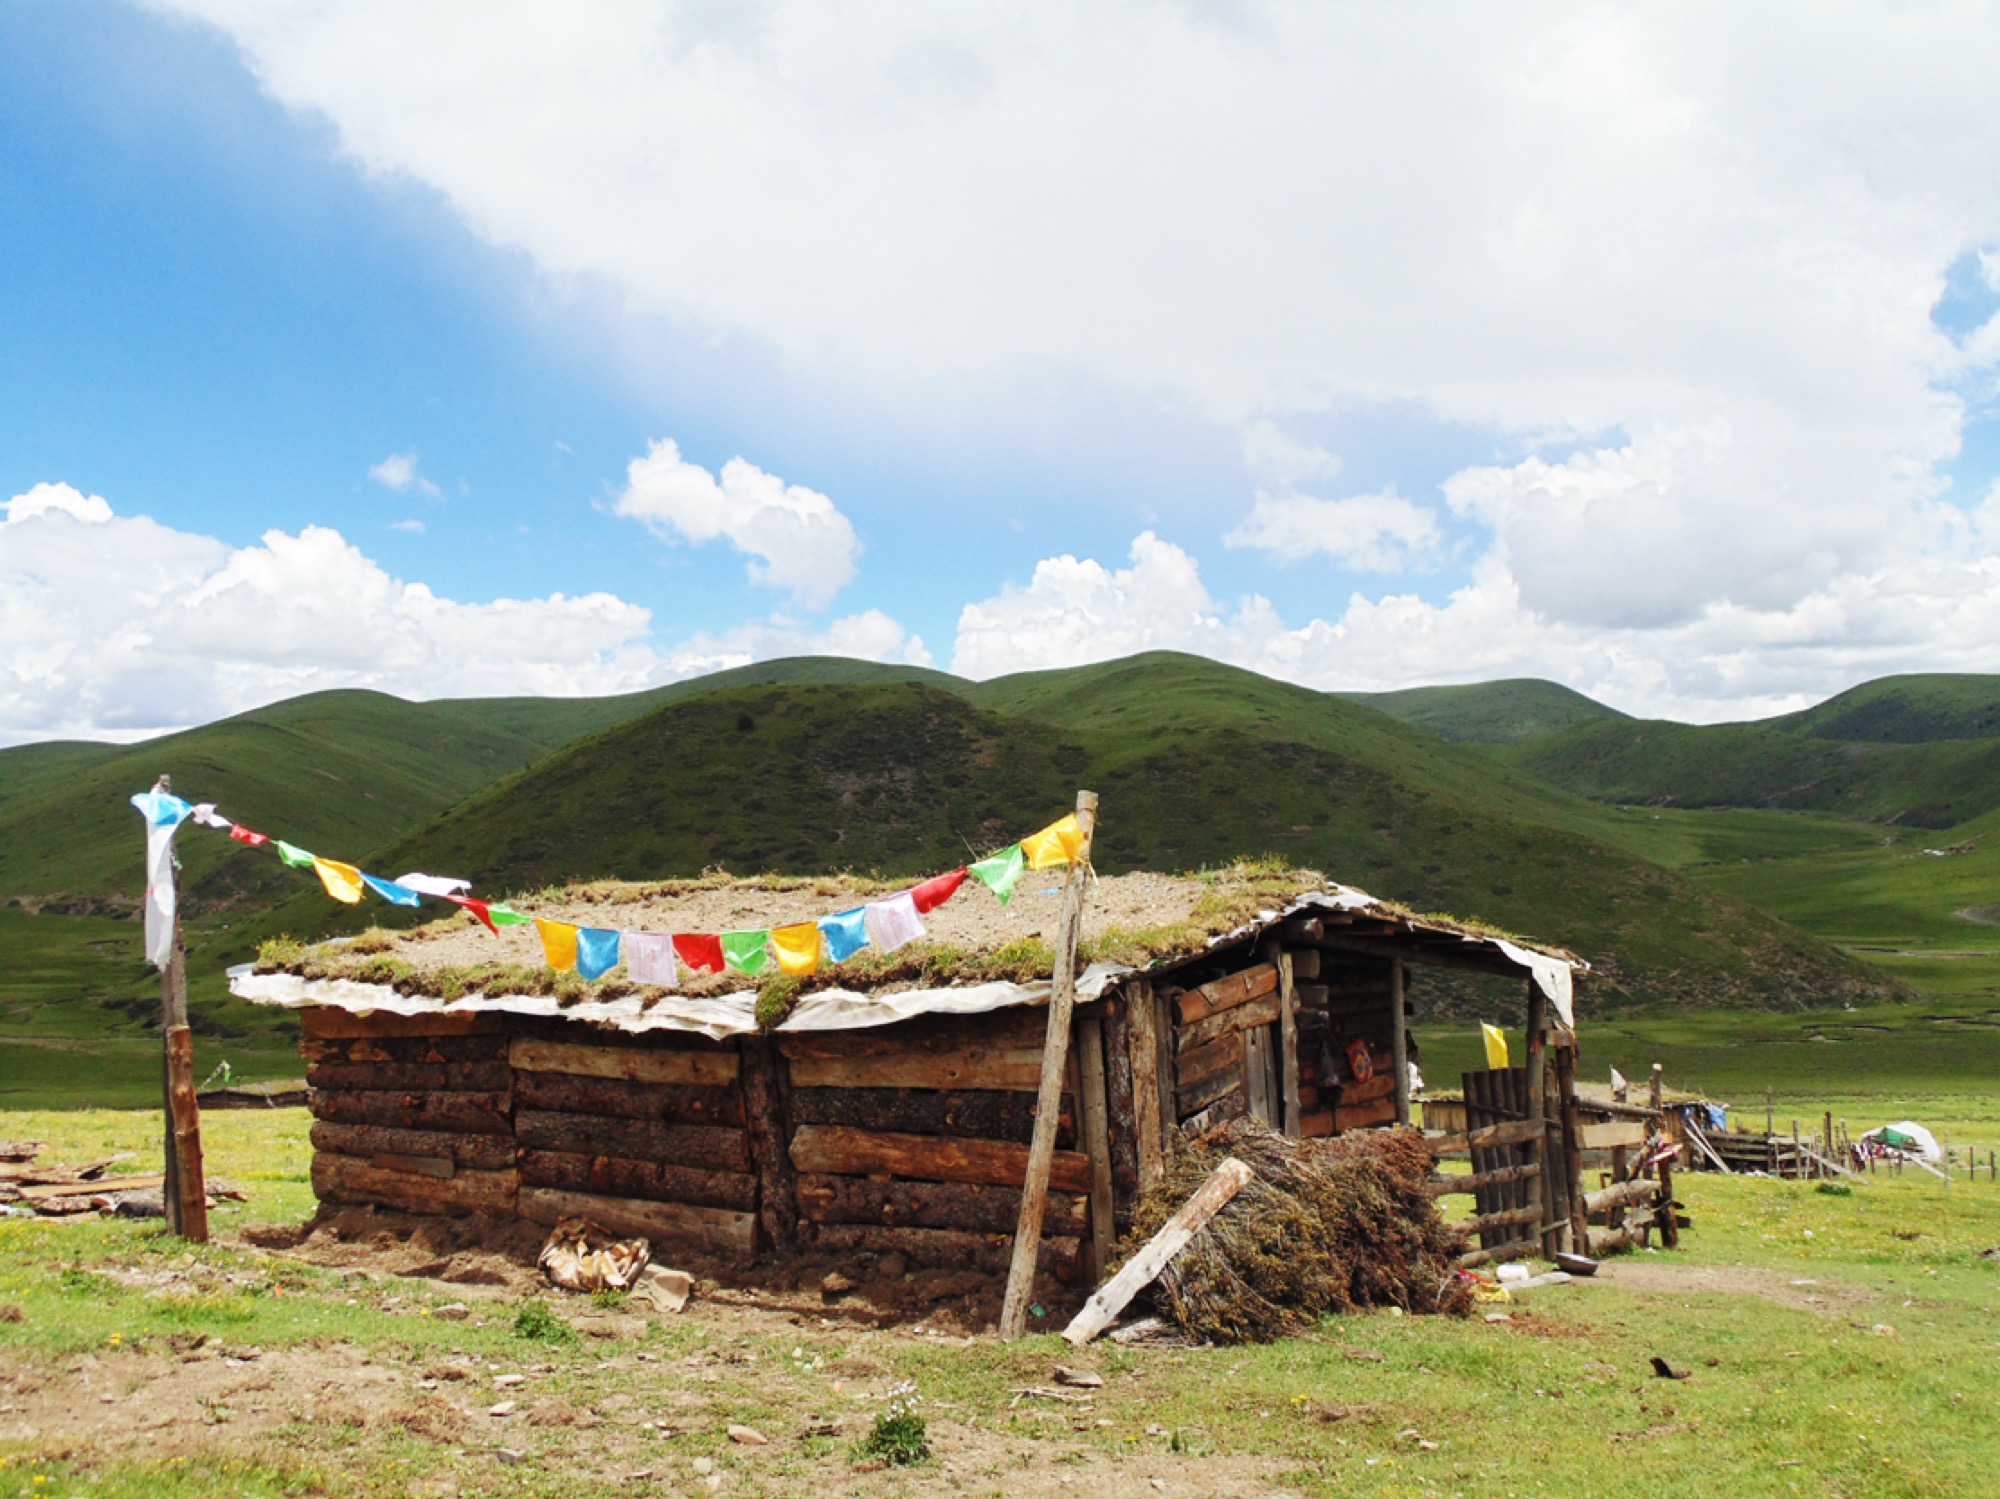 Photostory: Tibet, Towards the Roof of the World, by Arghya Ghosh 43